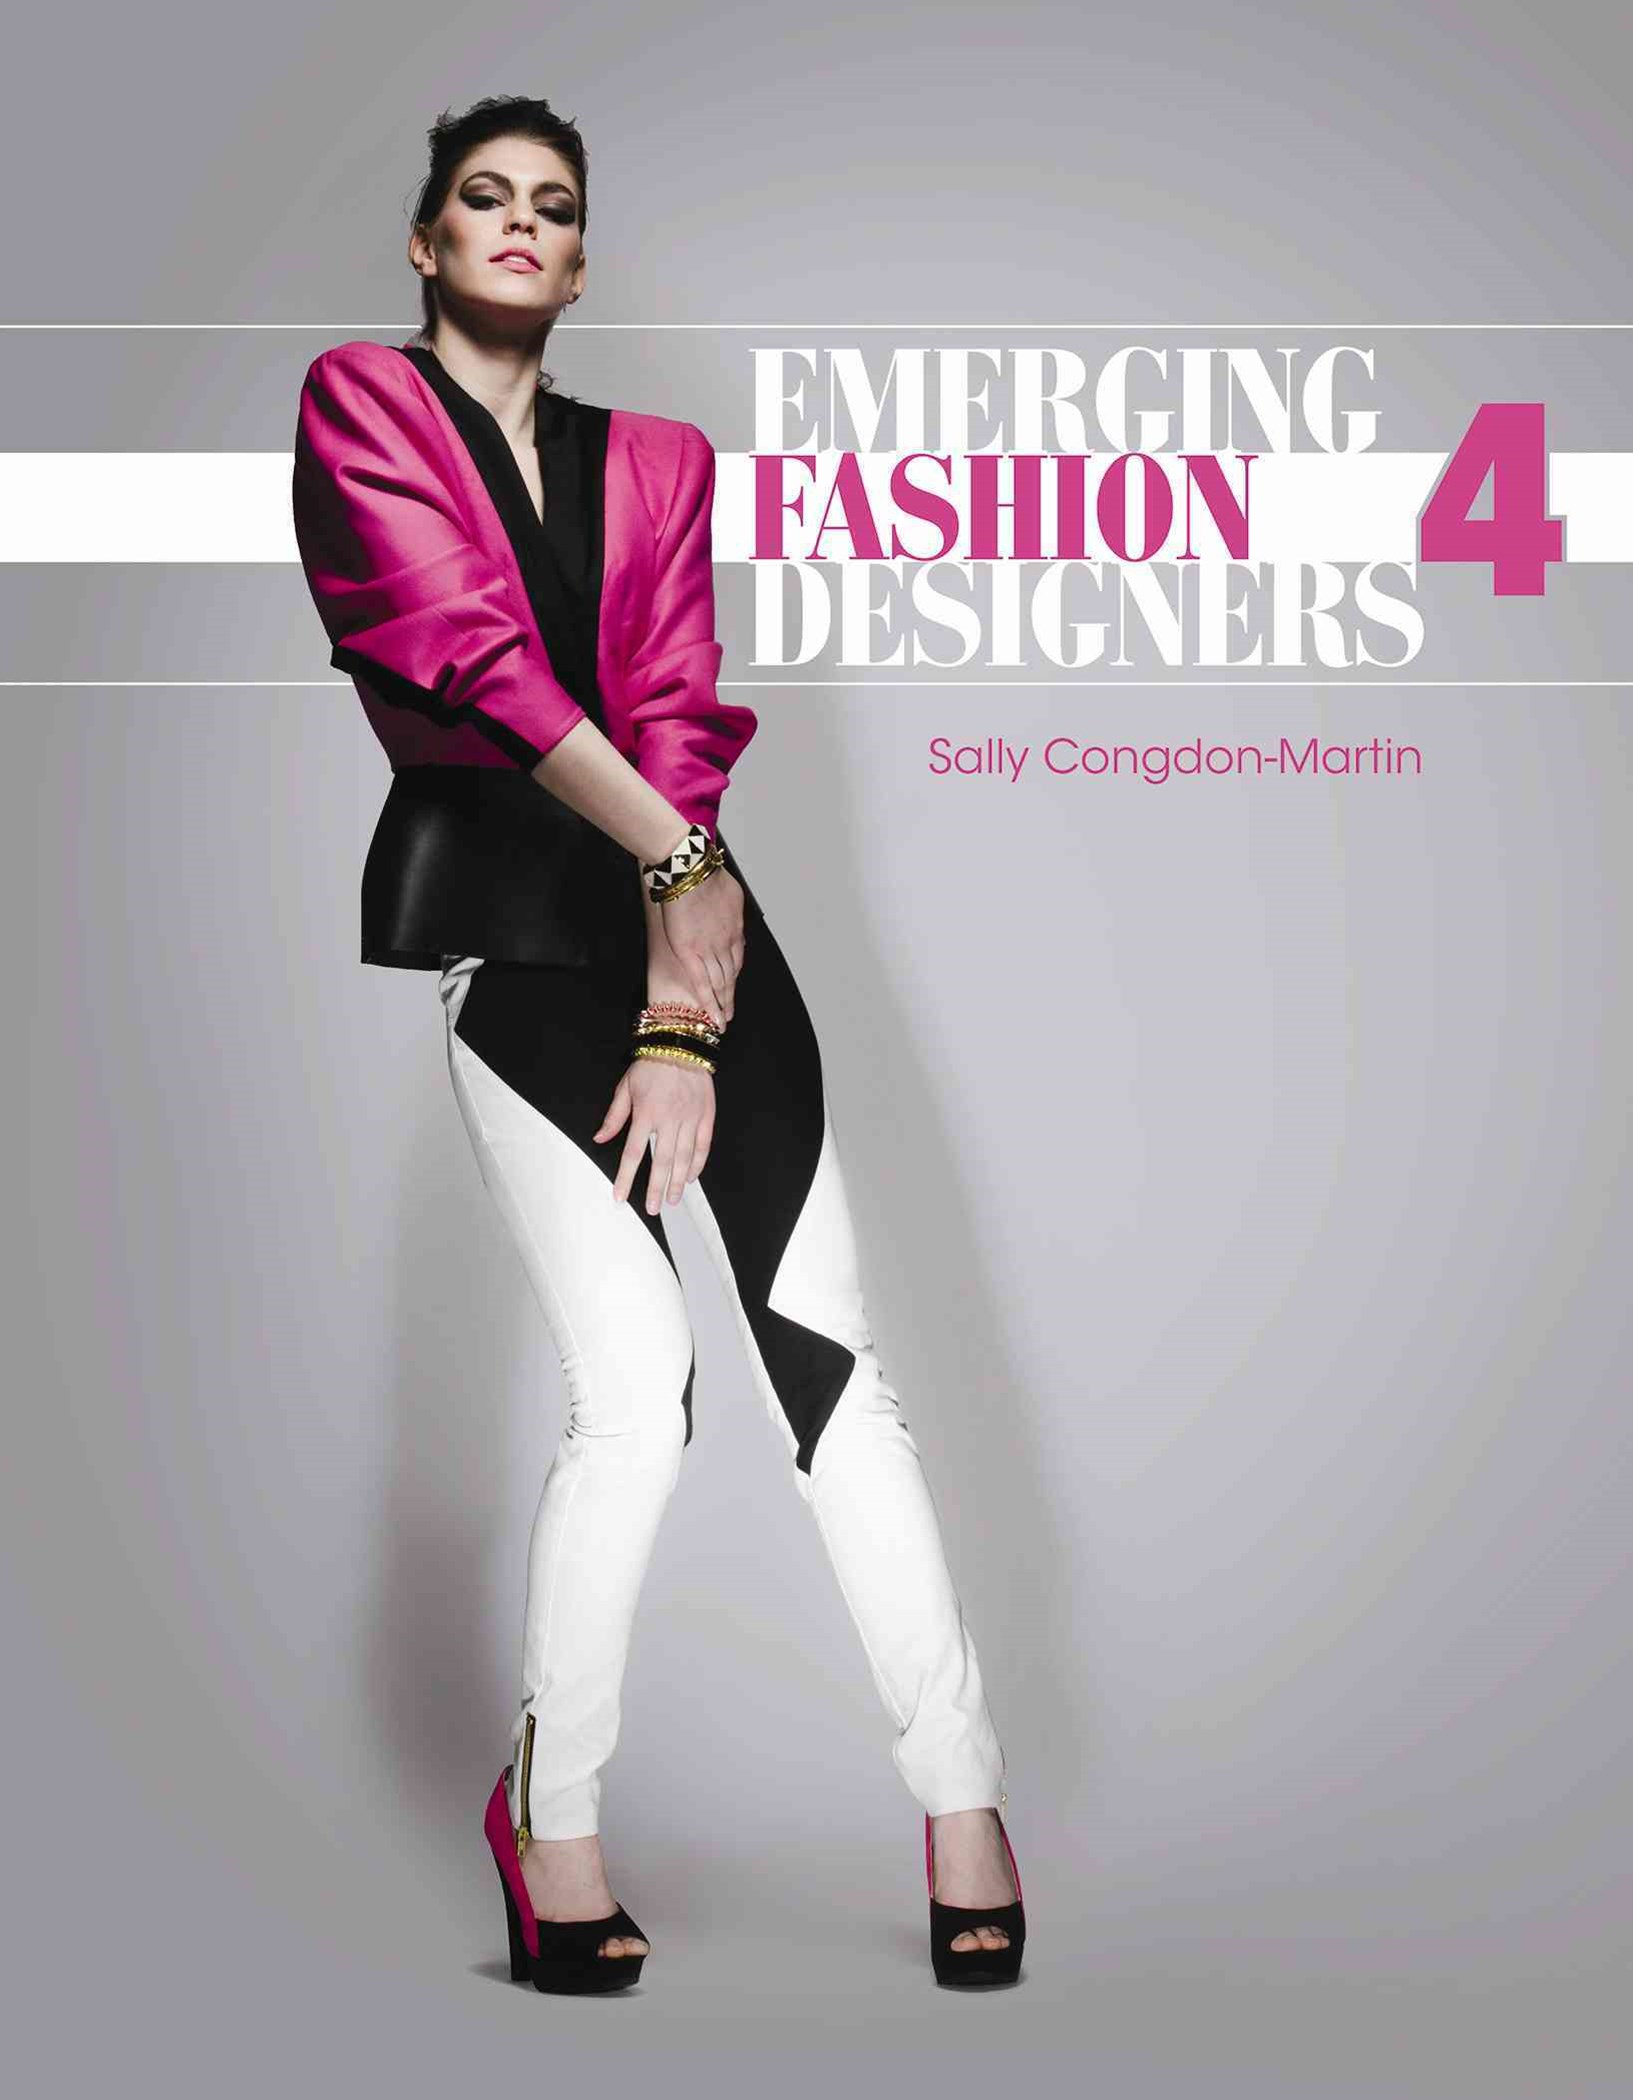 Emerging Fashion Designers 4